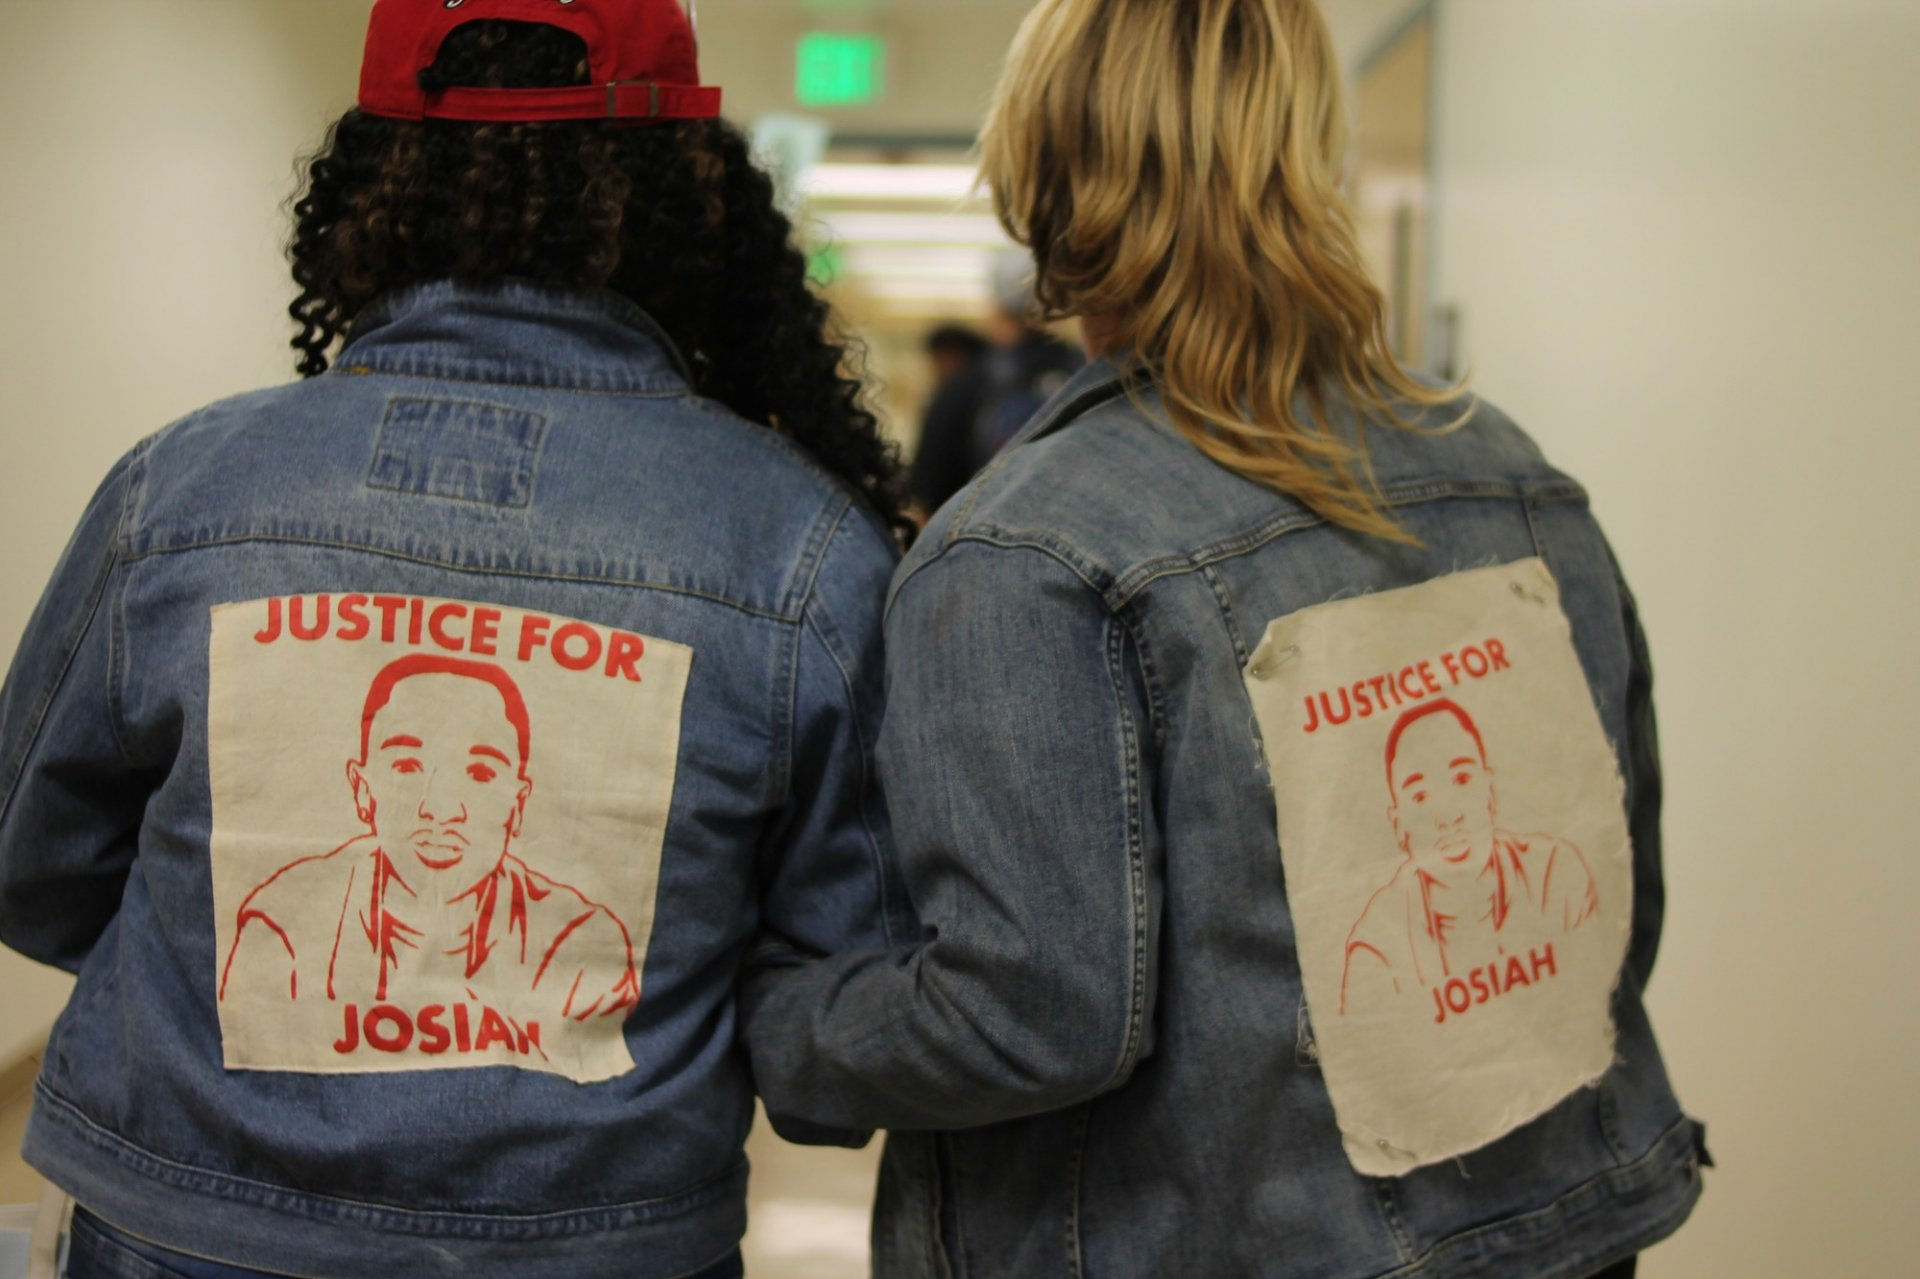 Charmaine Lawson, mother of Josiah Lawson, and Jill Larrabee, Justice for Josiah committee member, speak of acountability and safety at Sacramento State University on Oct 18 2018. | Photo by T. William Wallin